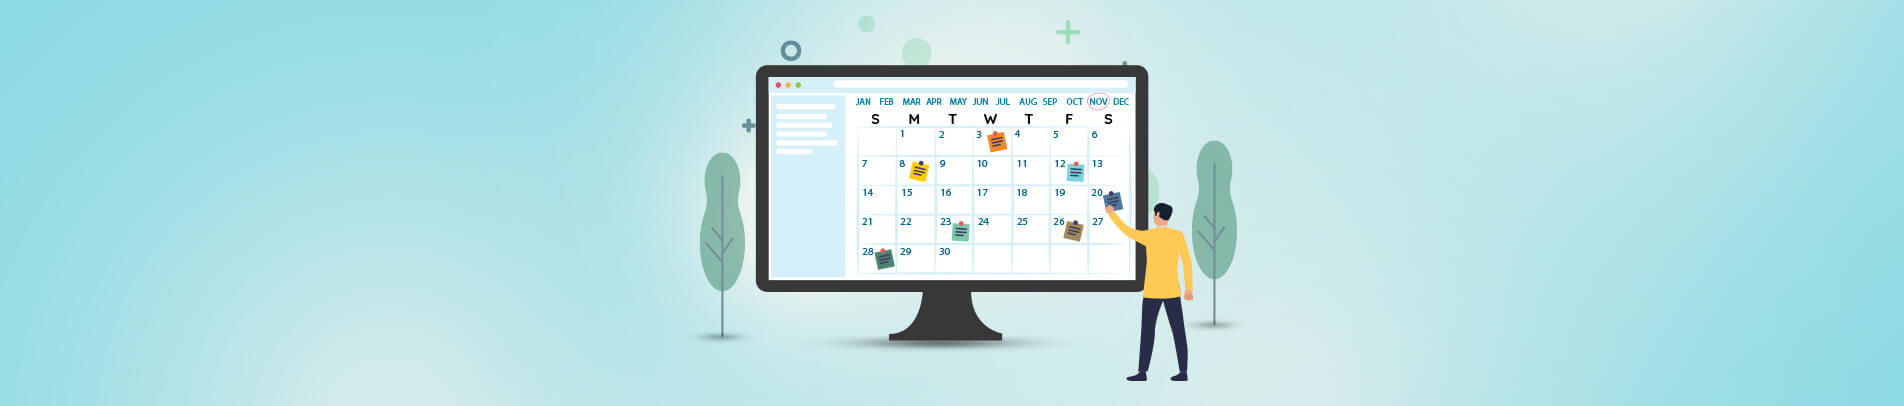 How to View and Manage Appointments From Dynamics CRM Calendar